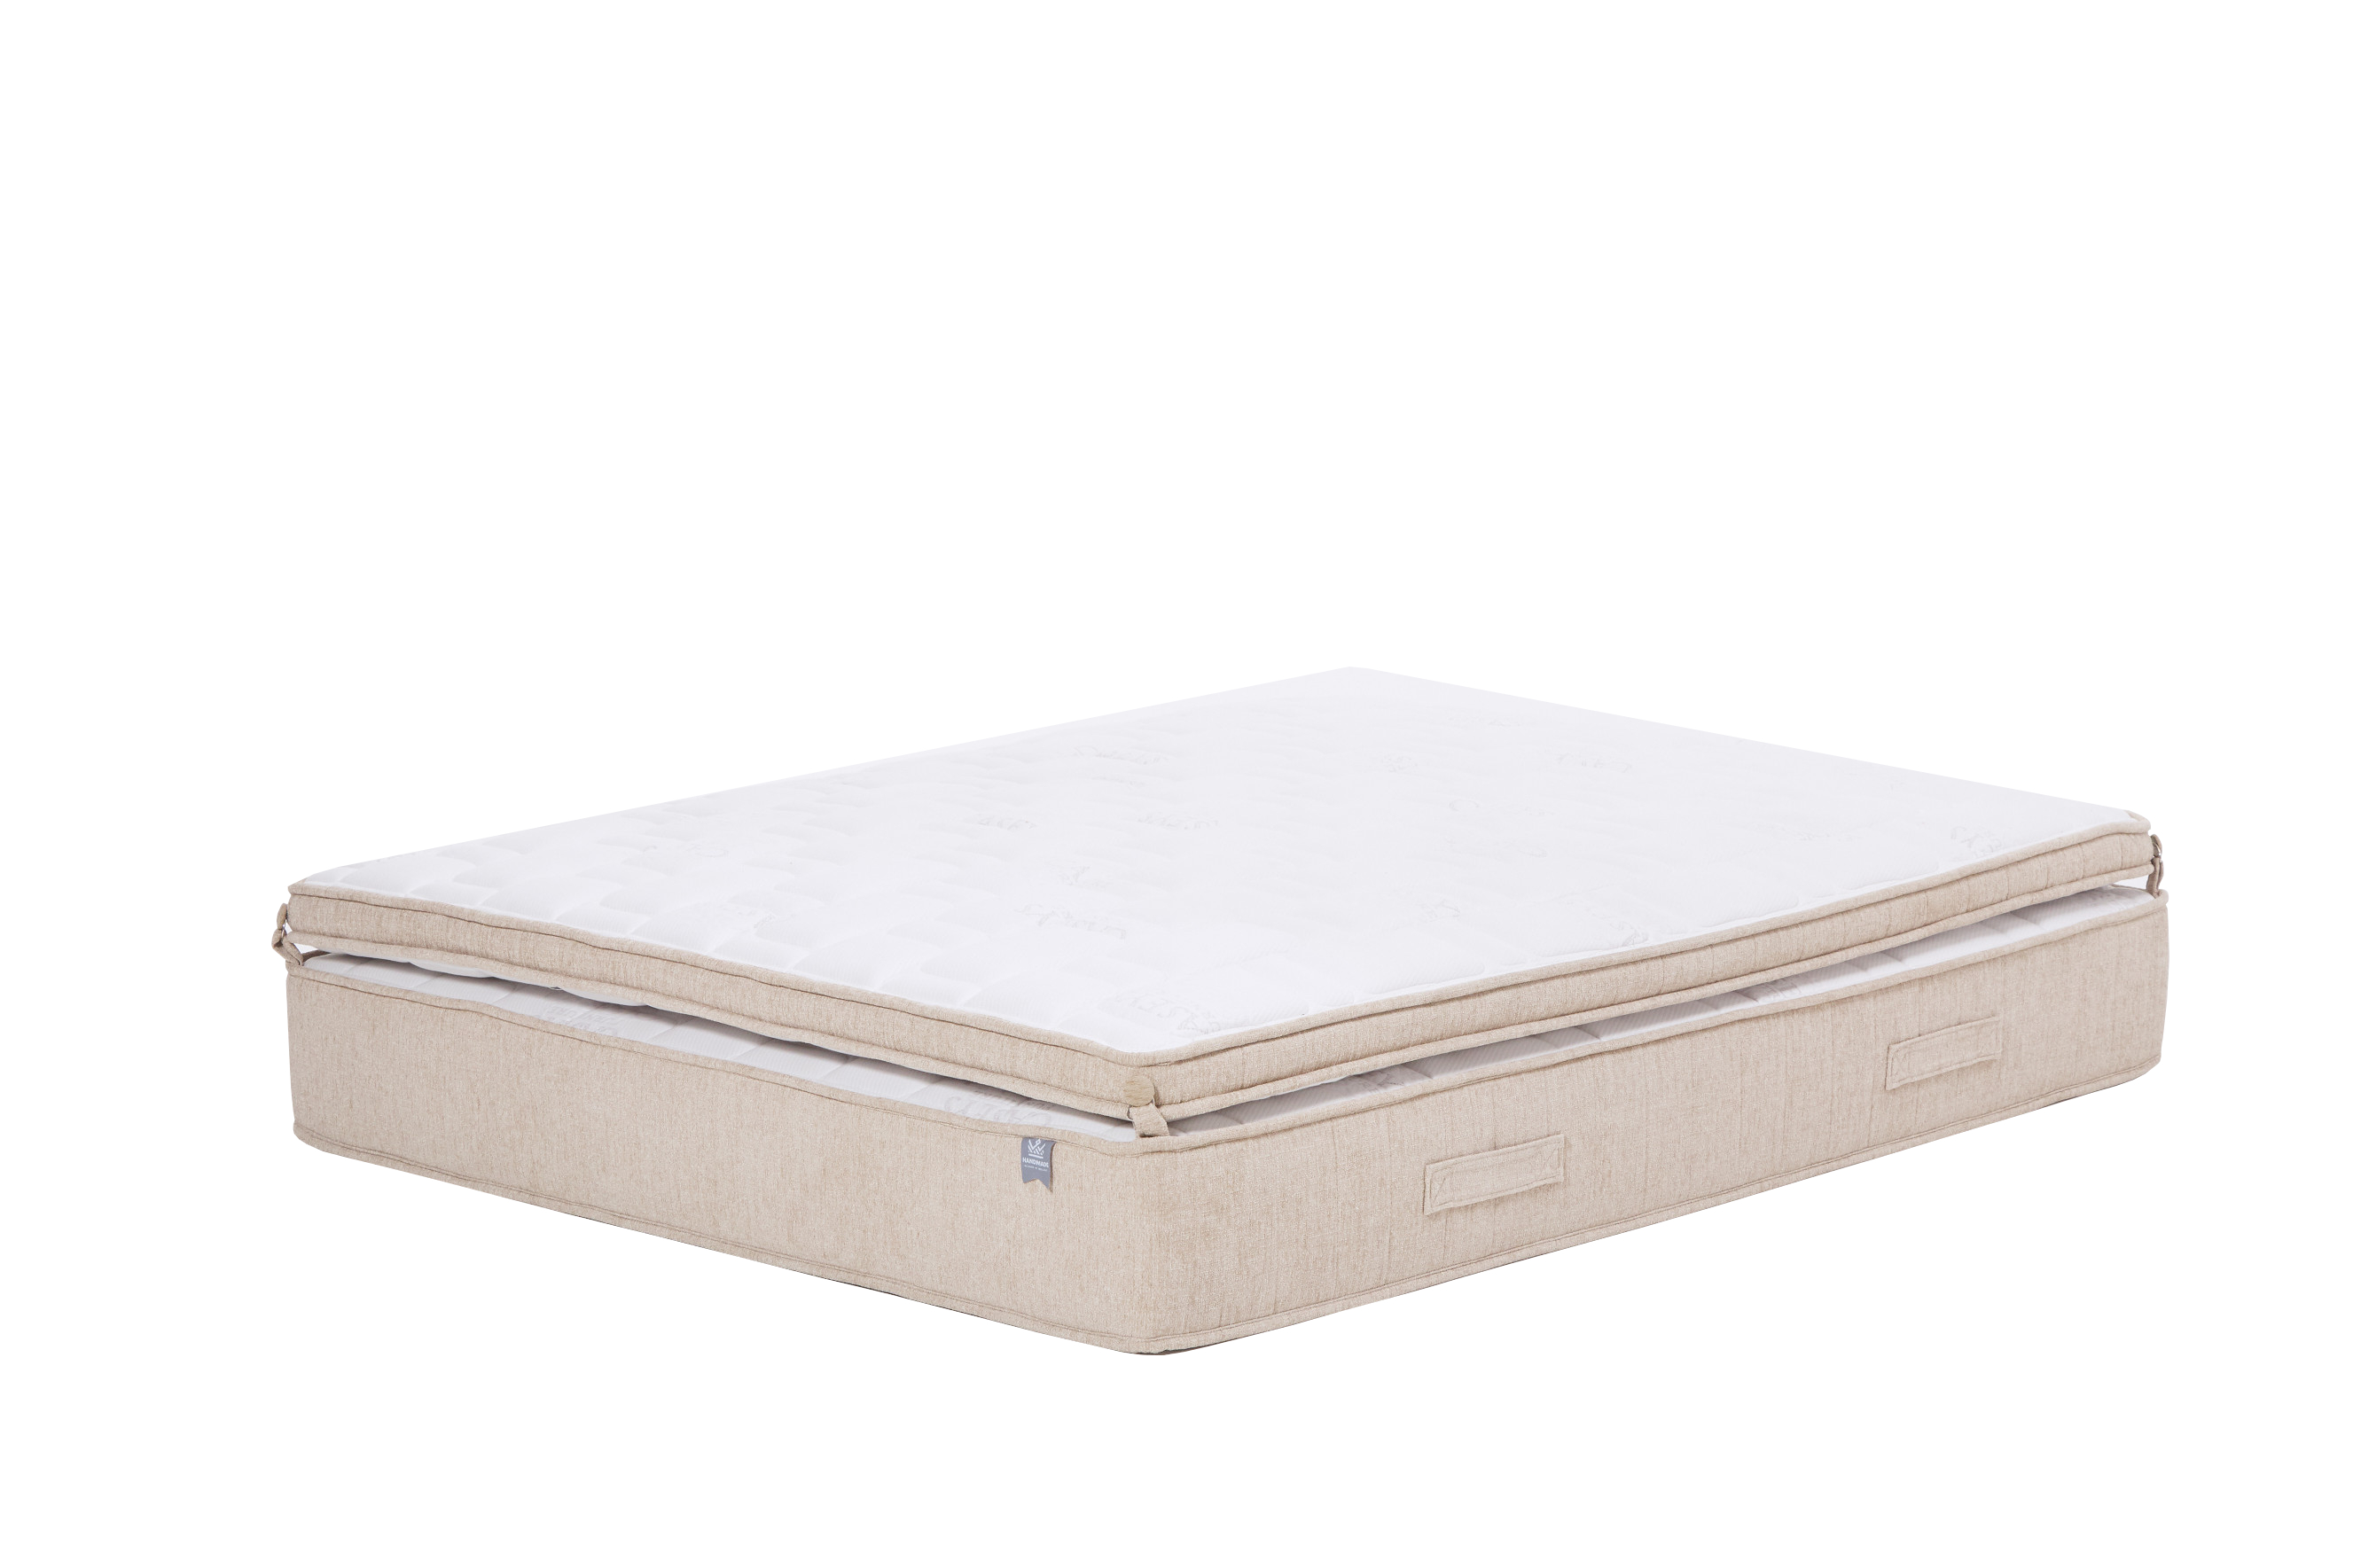 King Koil Caseys Superior Support Plus Mattress